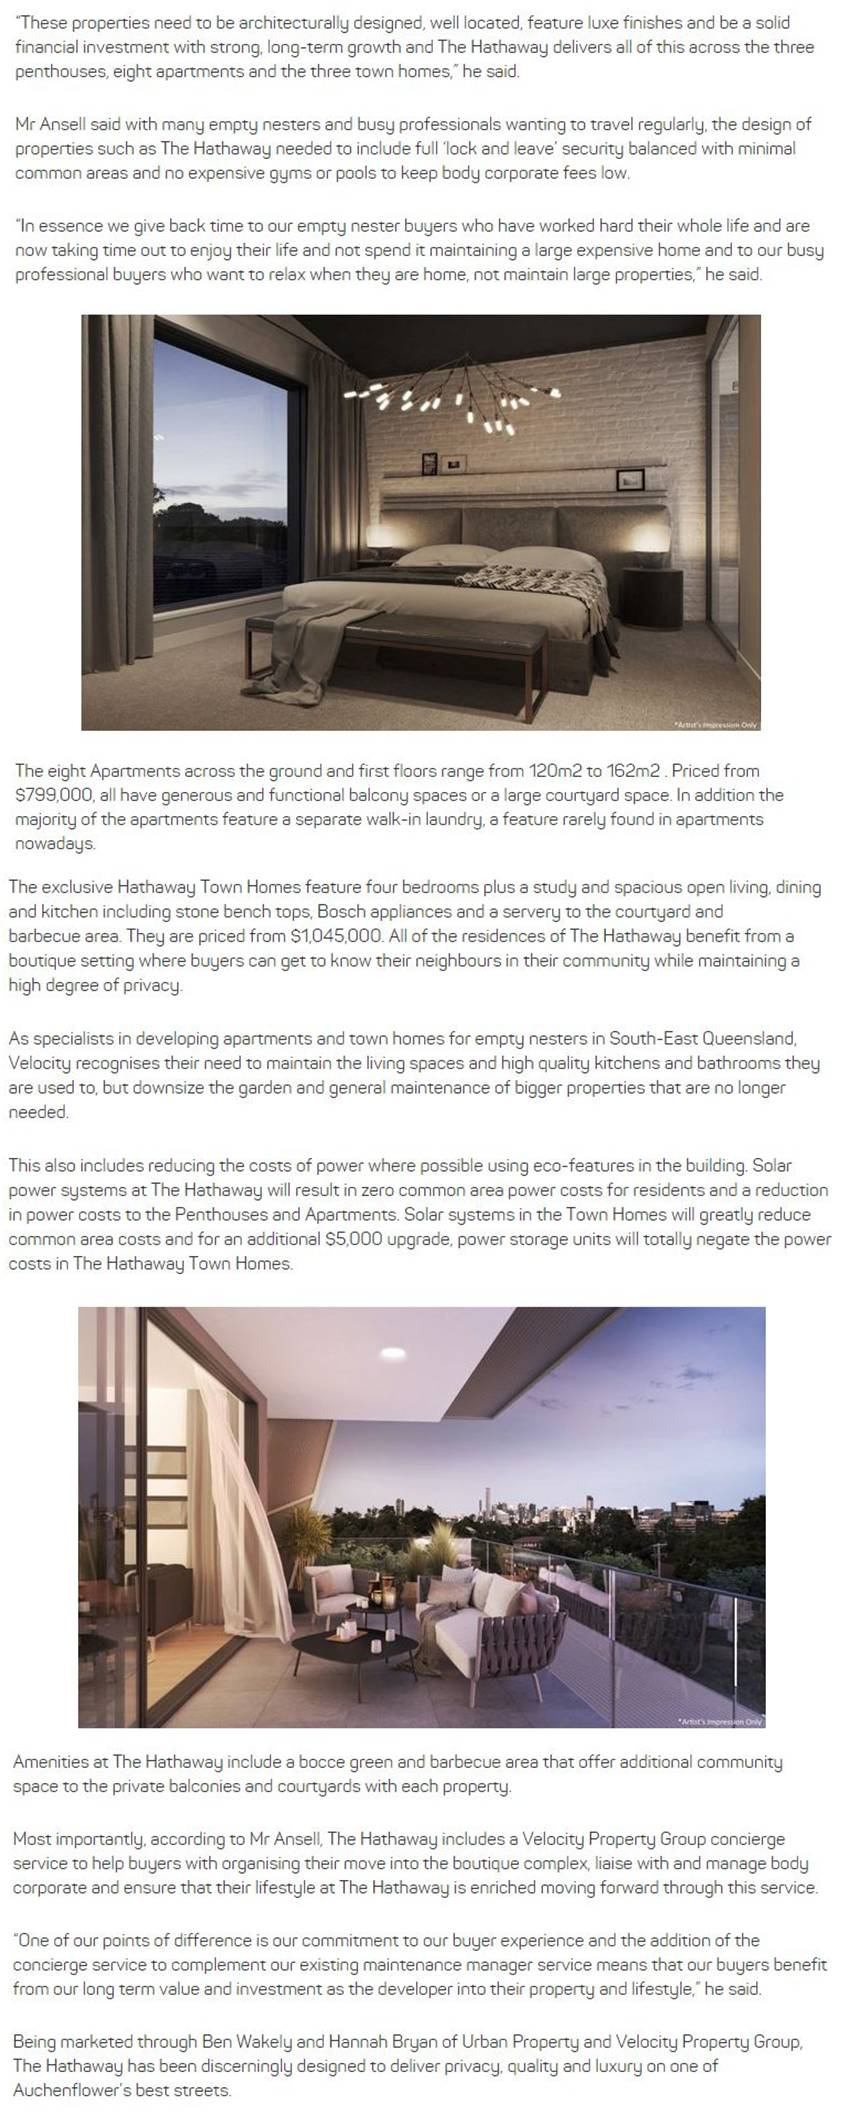 Pt 2The Urban Developer The Hathaway article 1 May 2017